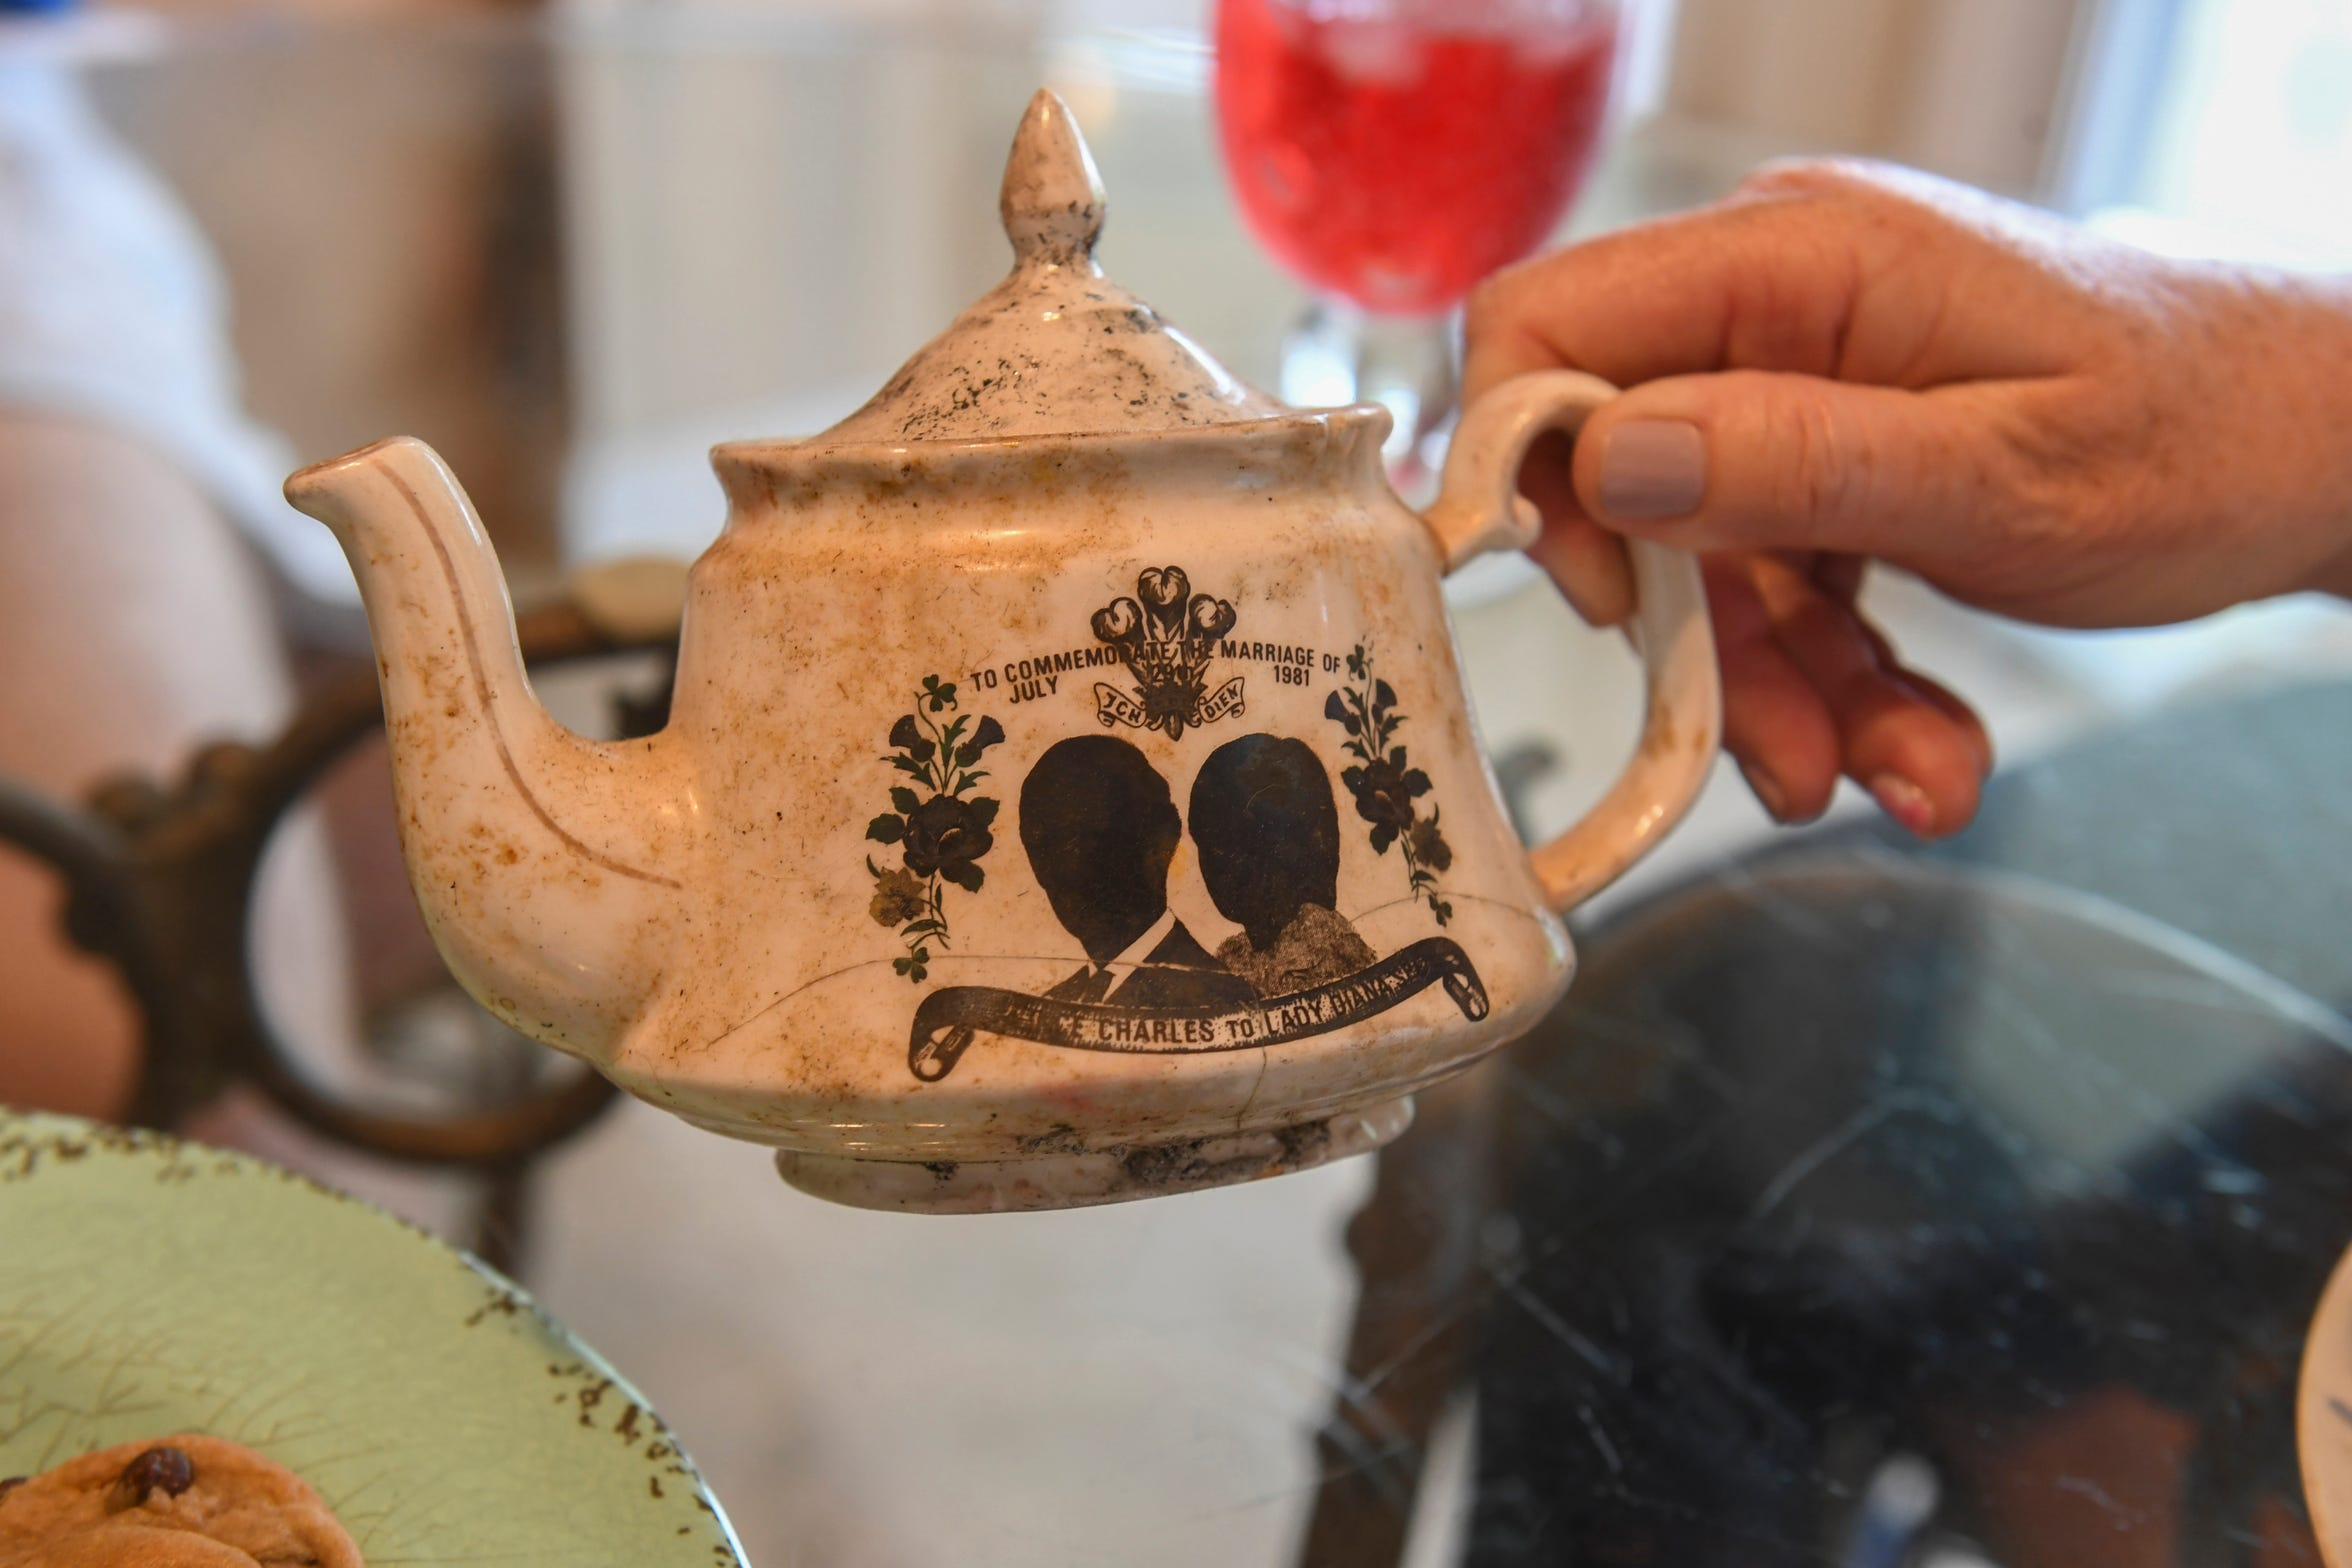 Linda Boogaart holds a teapot, part of a commemorative tea set from the marriage of Prince Charles and Princess Diana, recovered from the remains of their home. It still shows the damage and ashes of the fire that destroyed their home April 15, 1999, in Port St. Lucie.